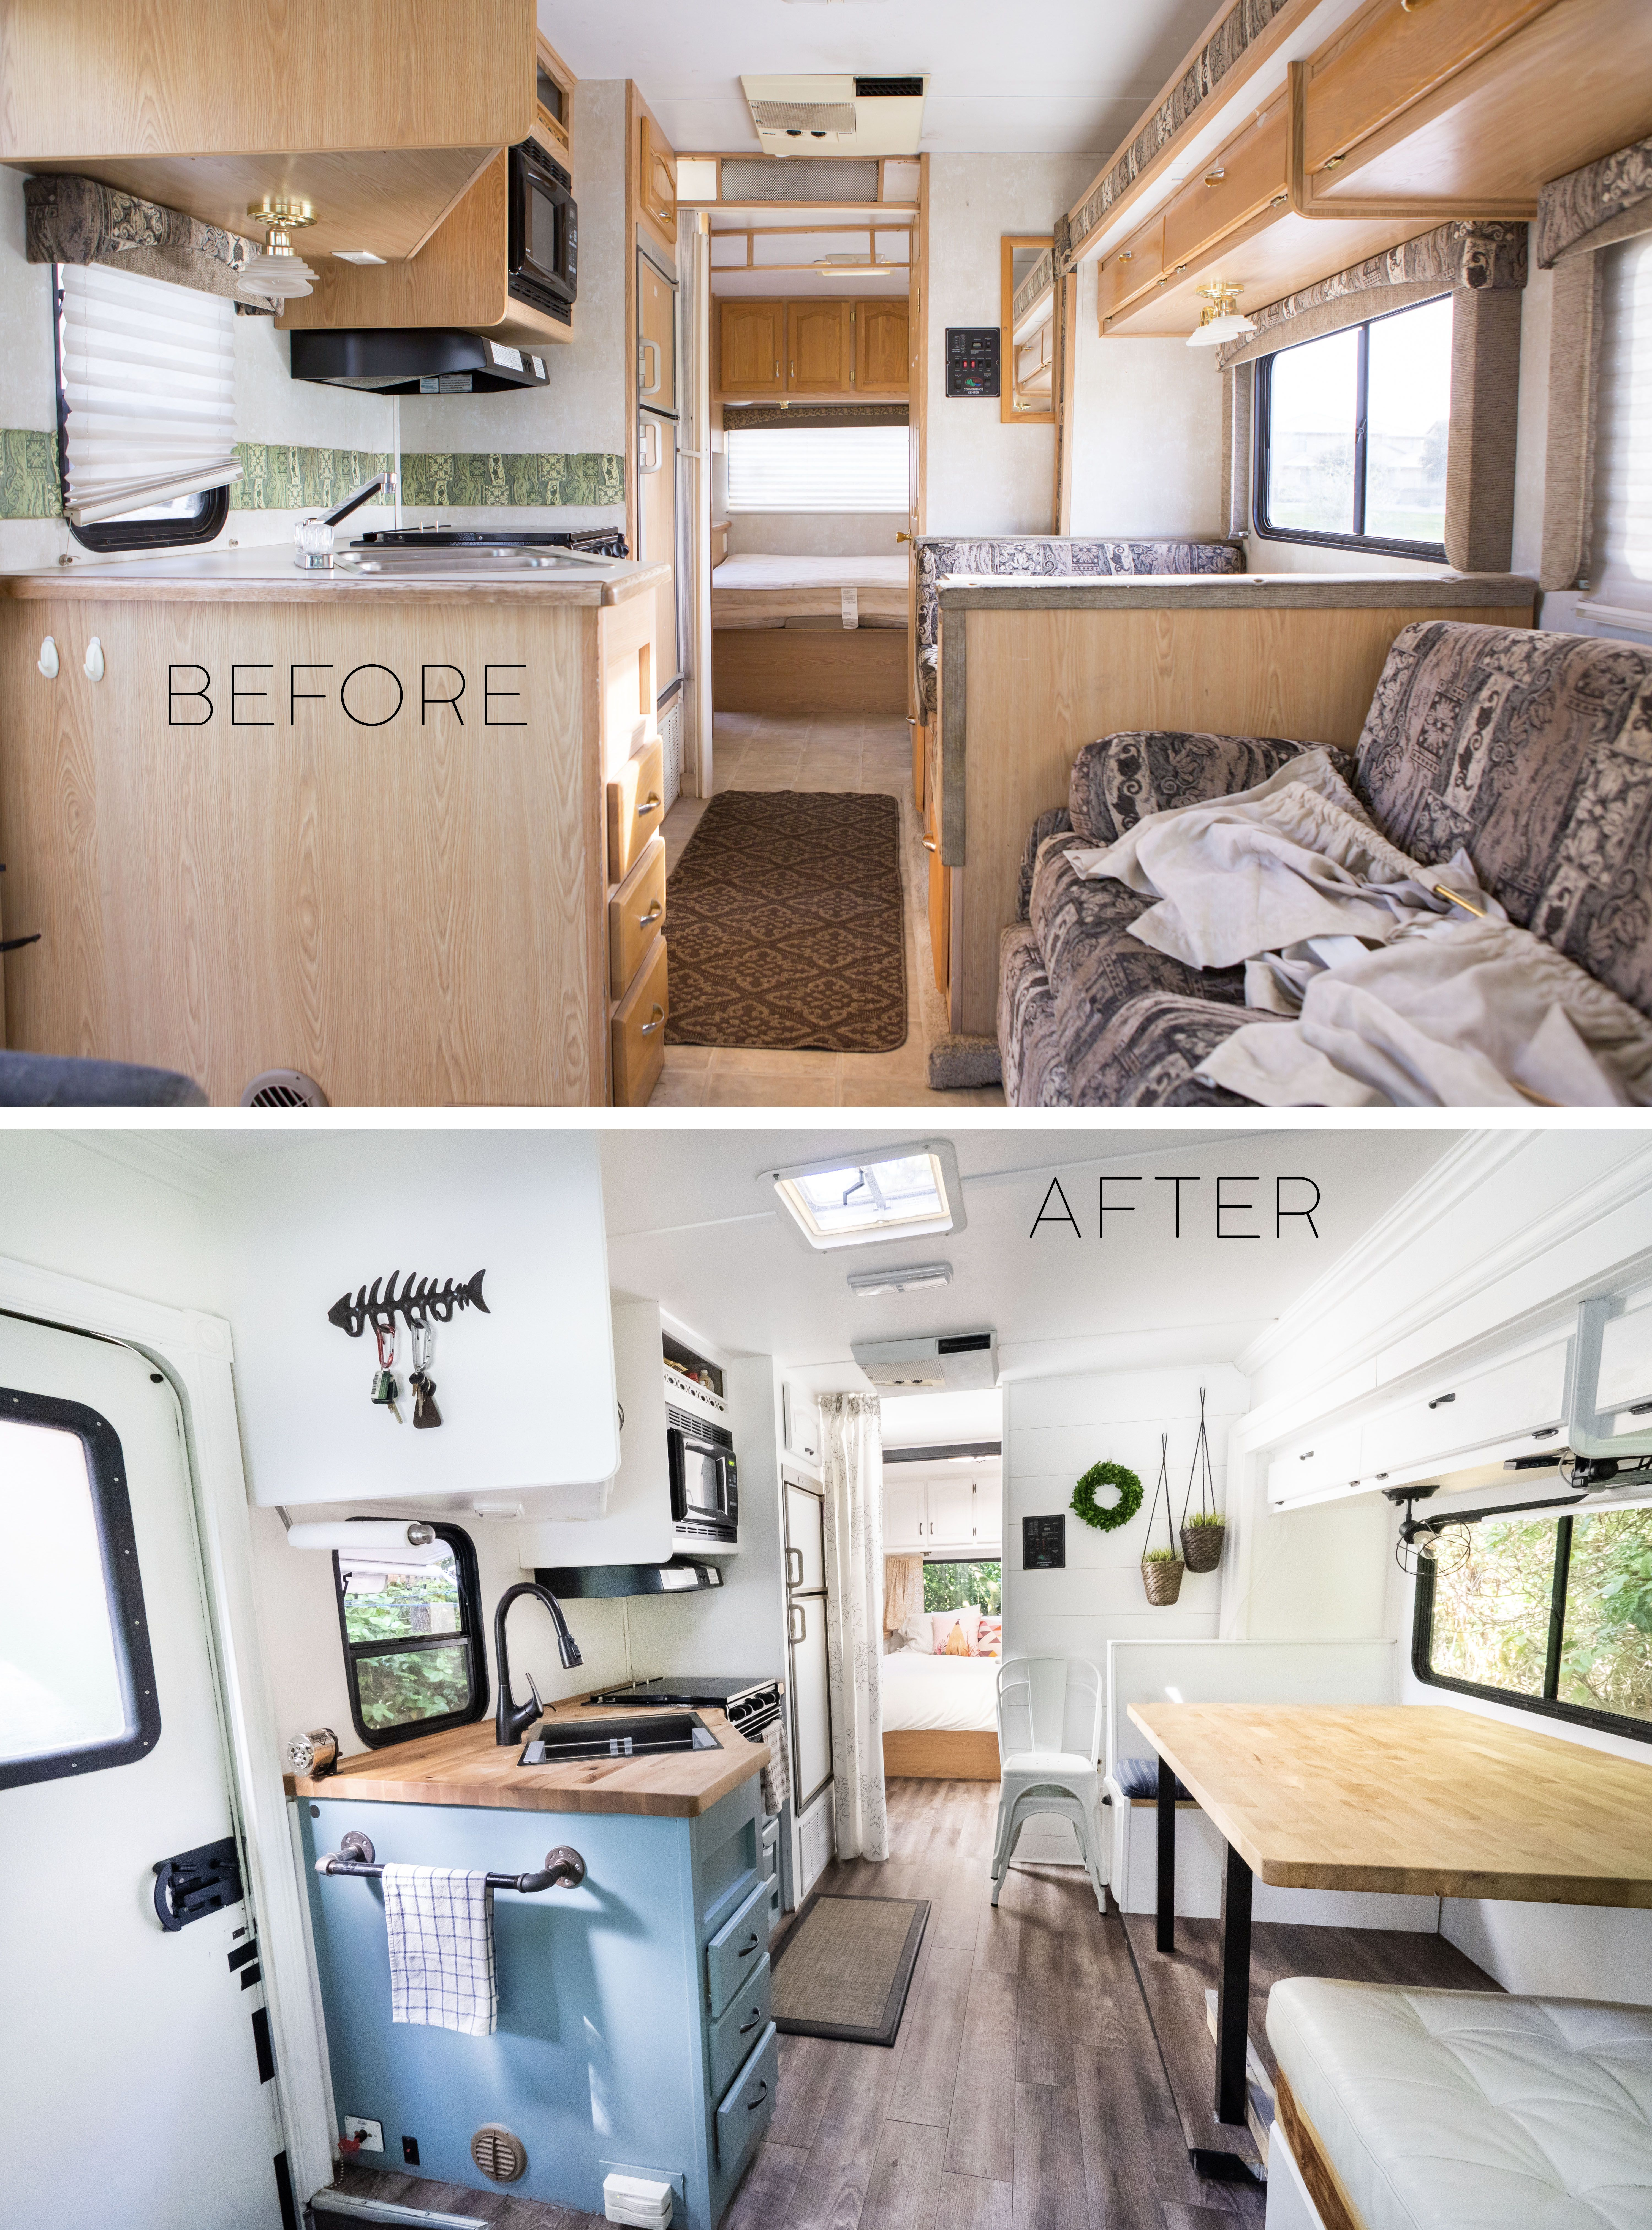 From House To Motorhome Before And After Photos Beforeafter